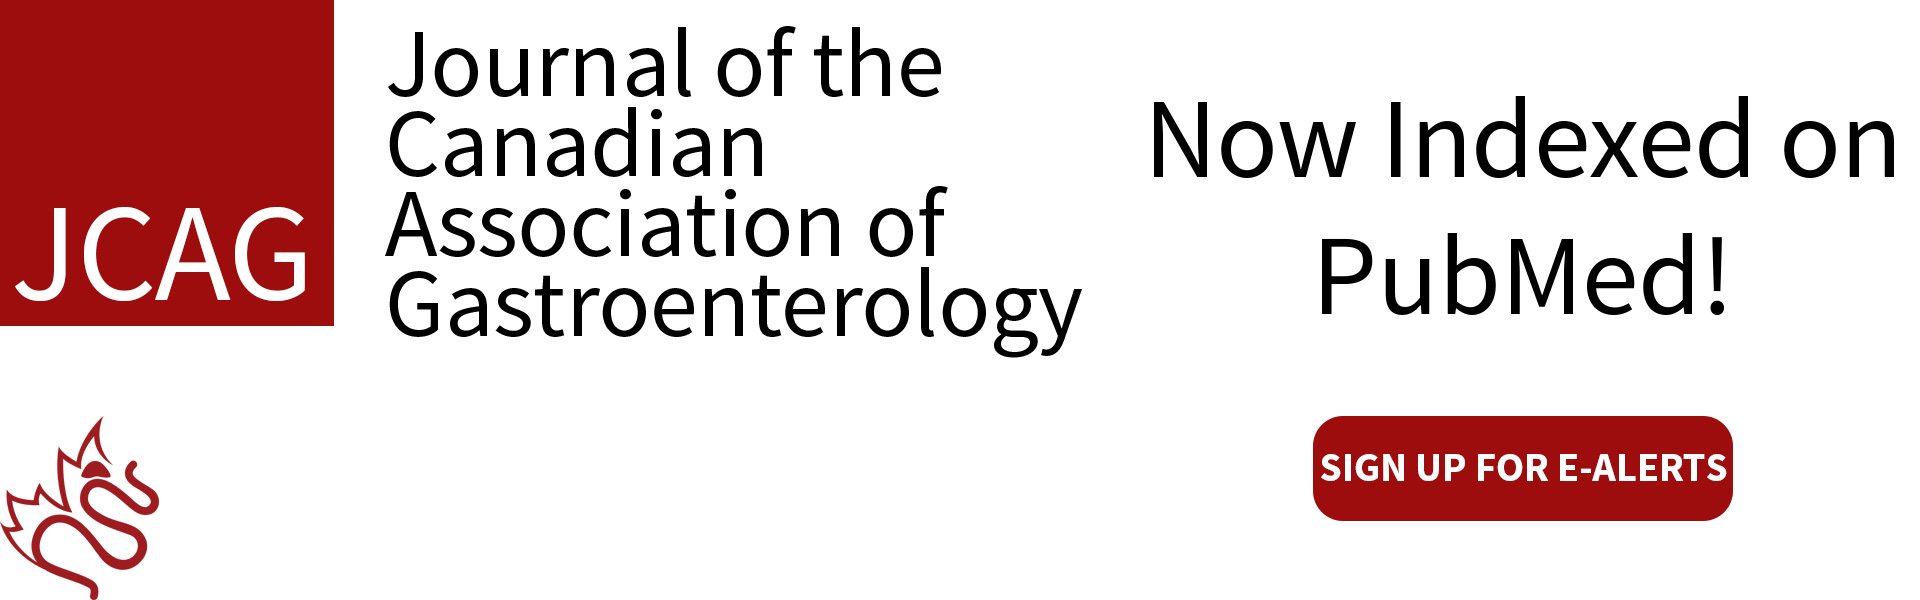 Canadian Association of Gastroenterology